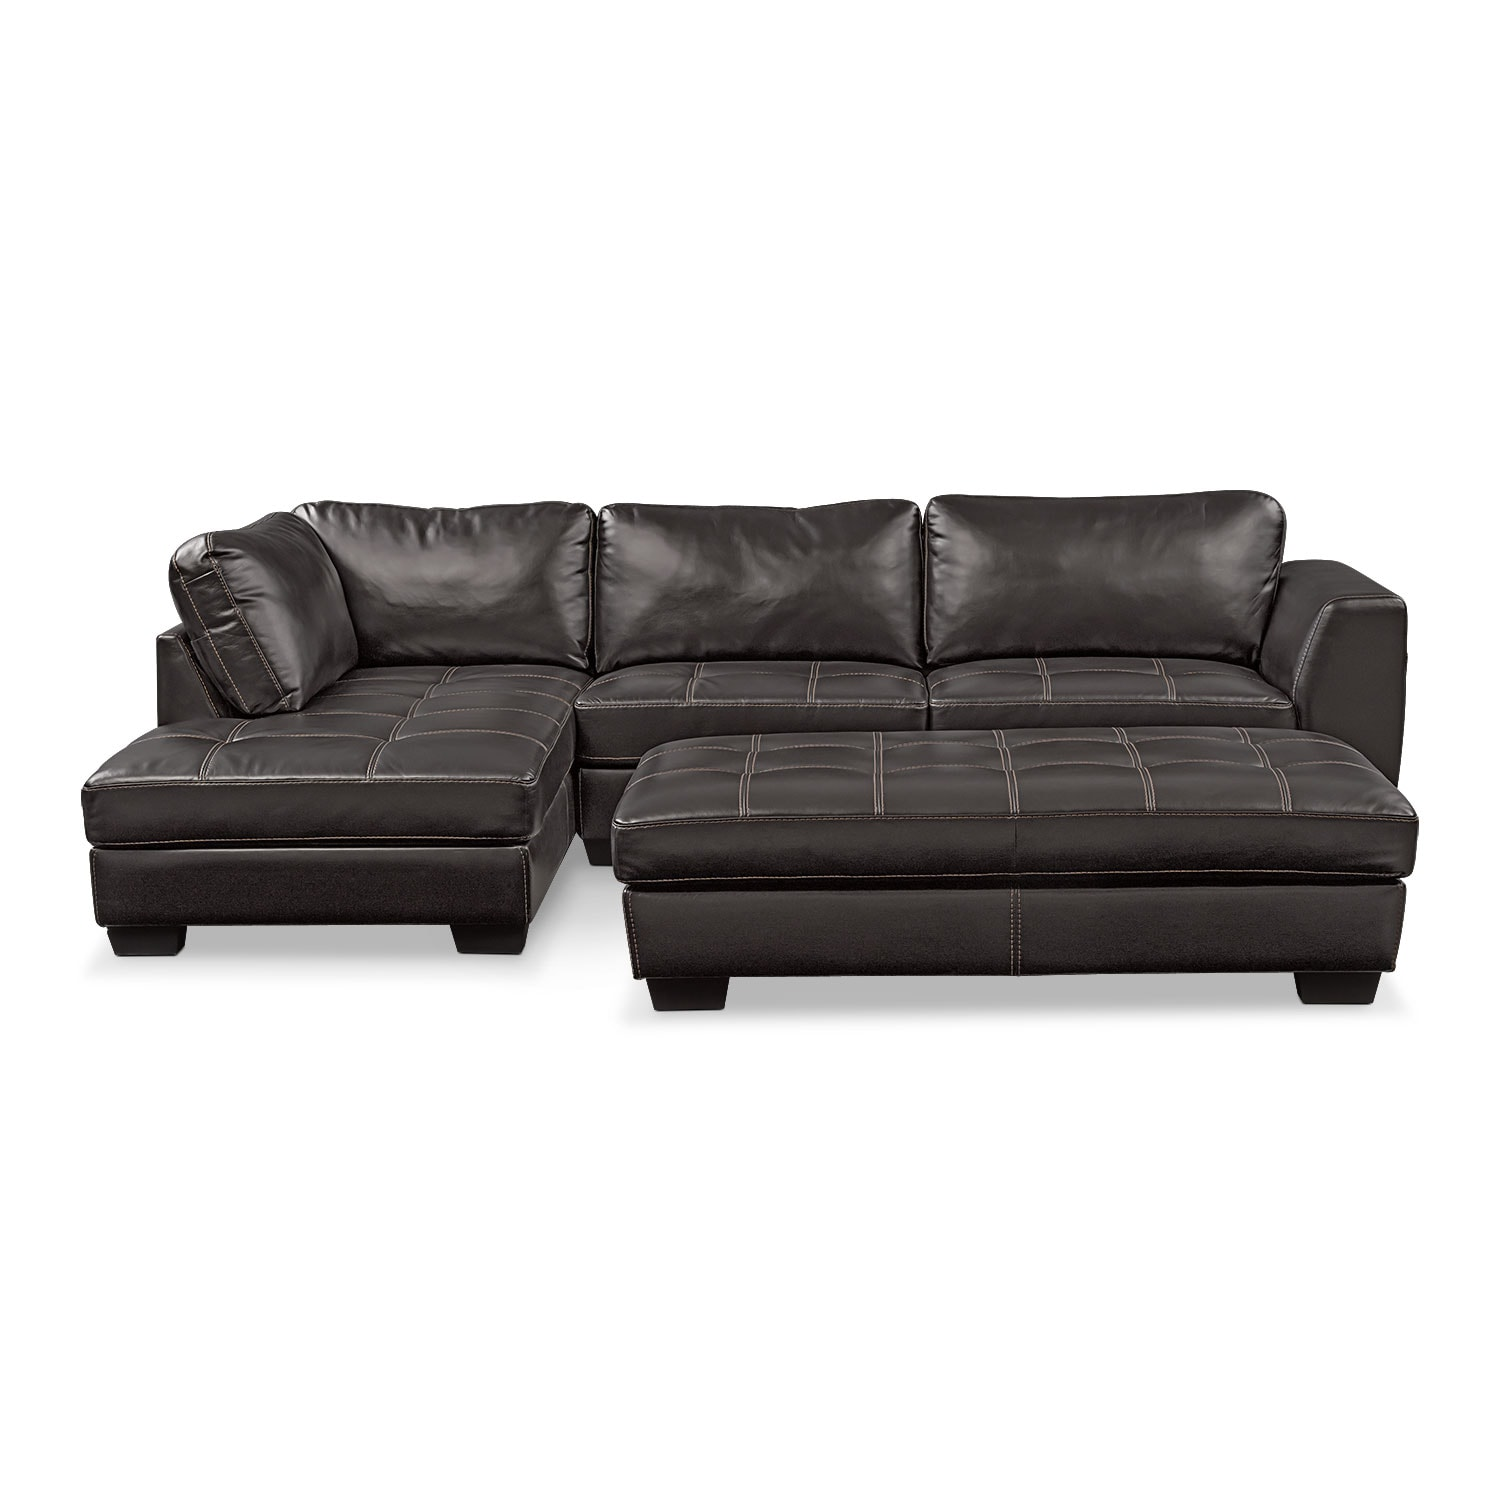 Living Room Furniture - Santana 2-Piece Sectional with Chaise and Cocktail Ottoman Set